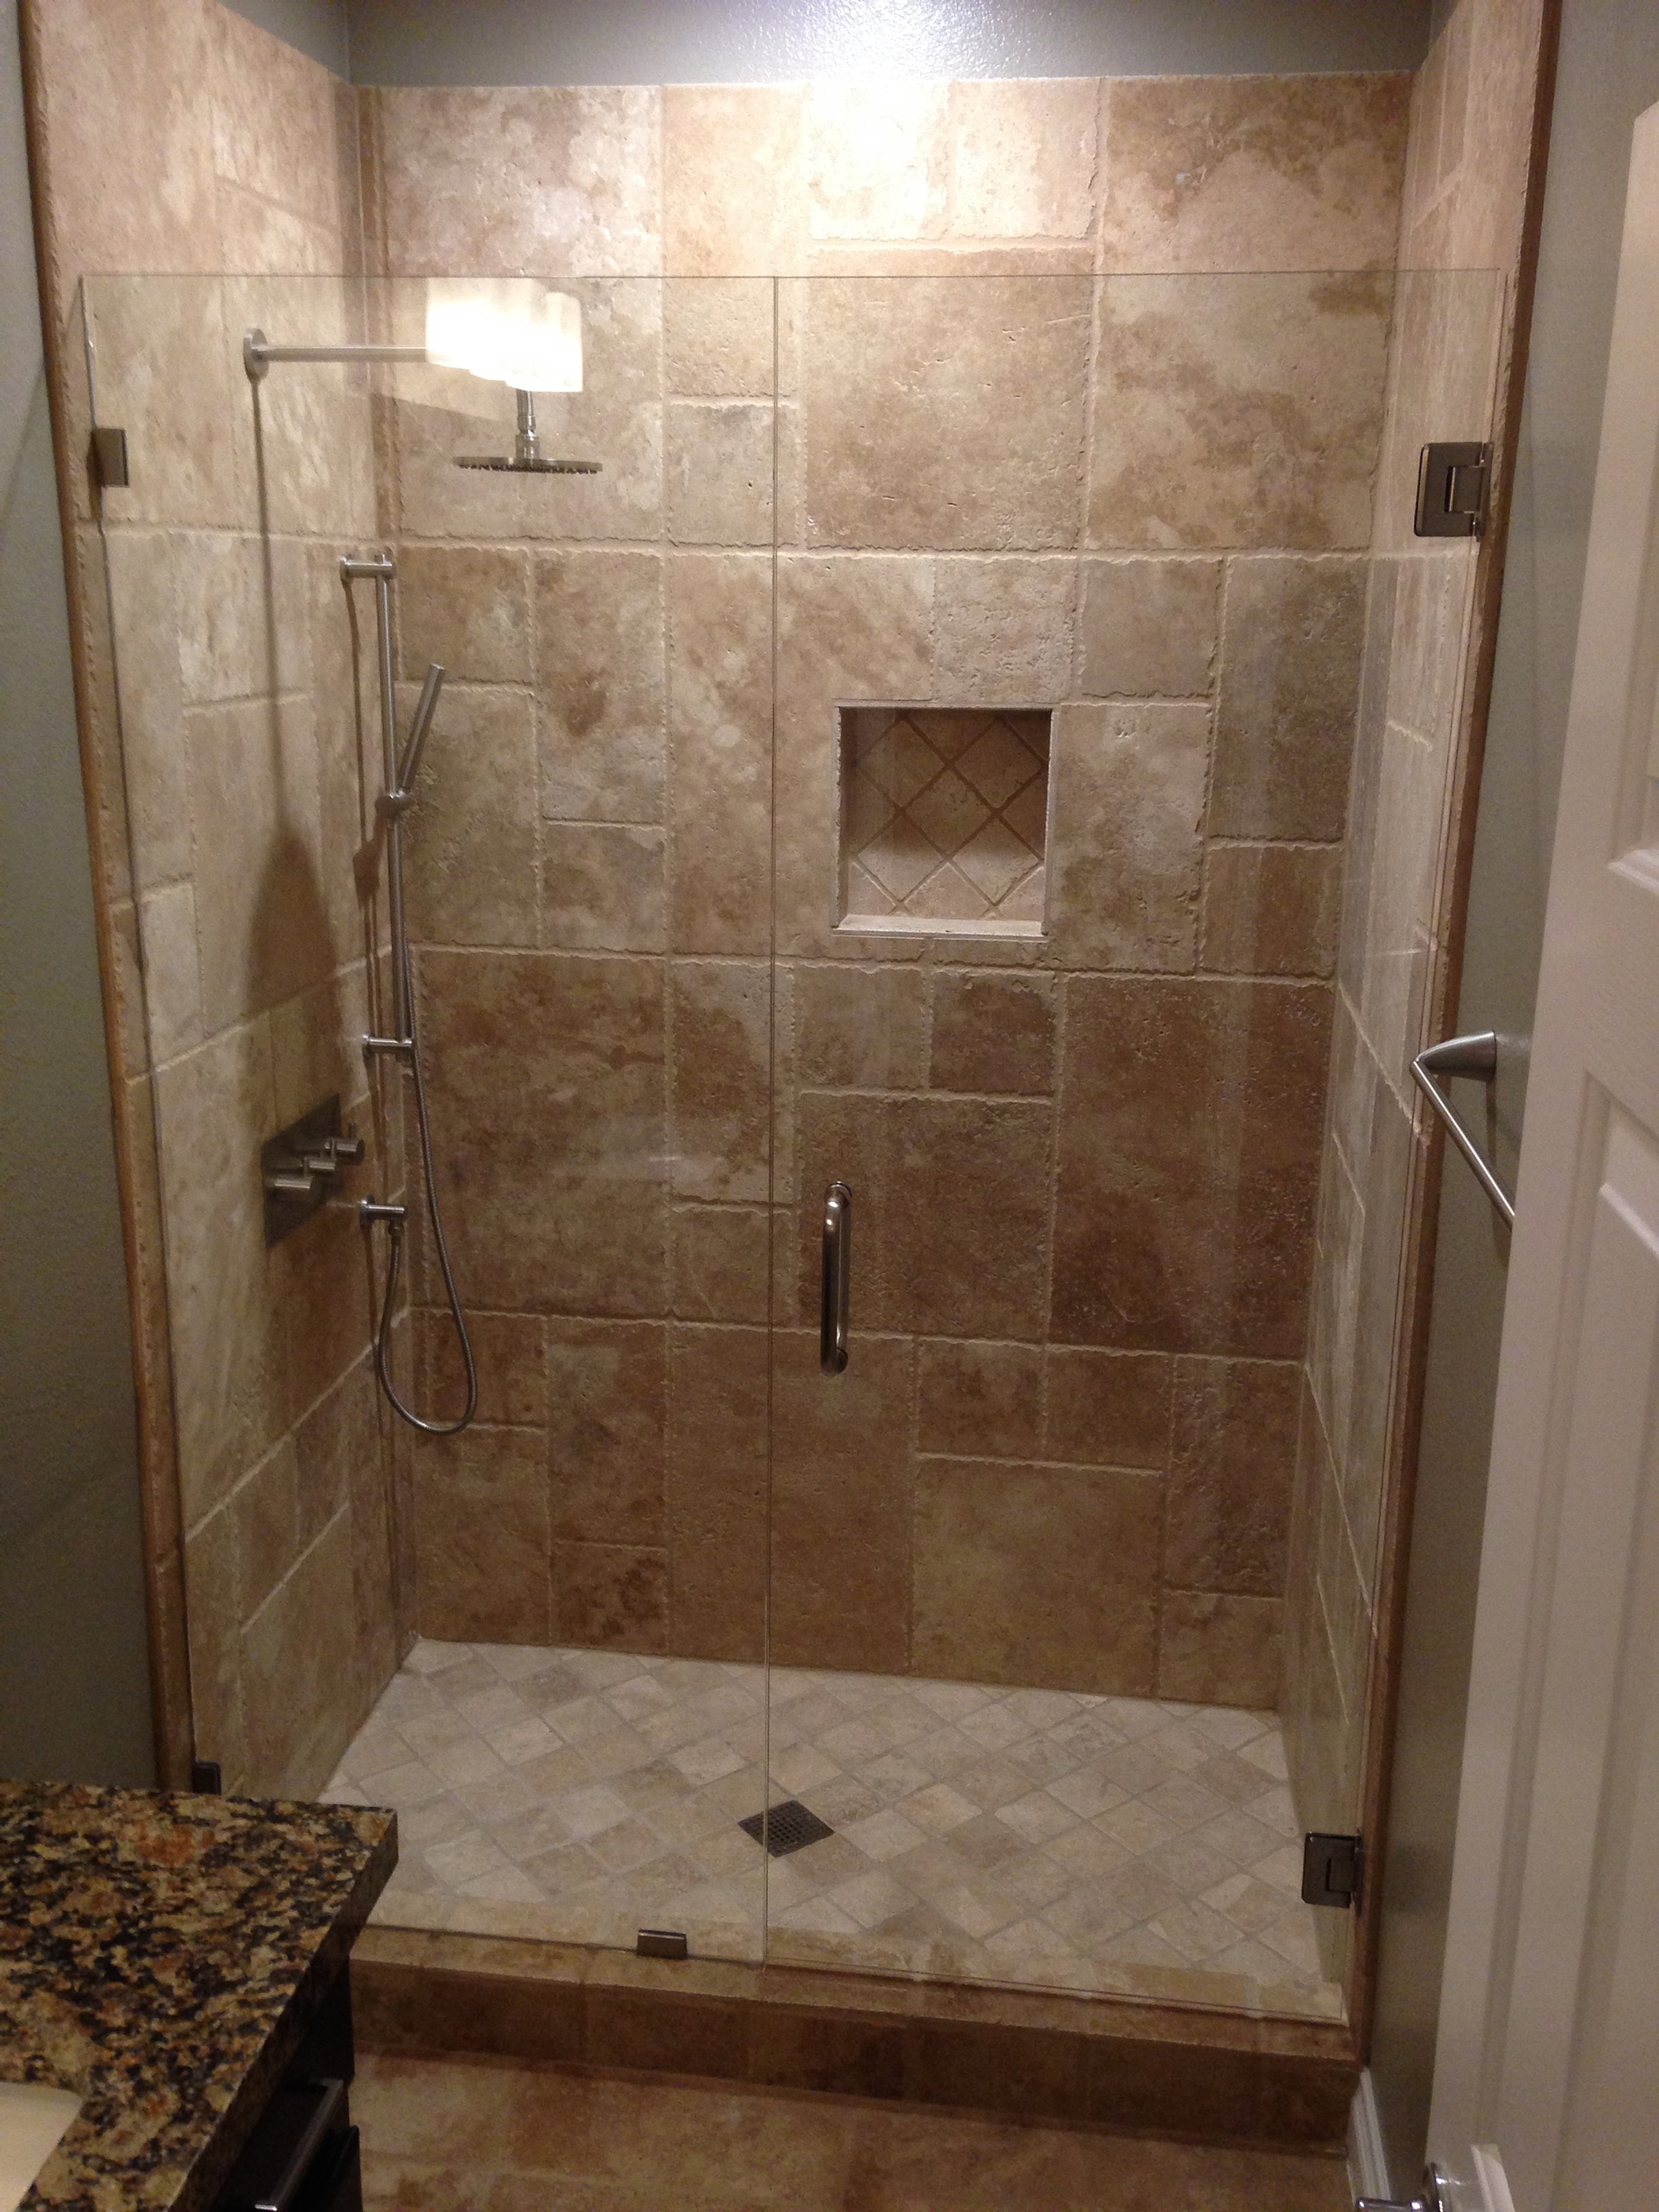 Inline shower with pivot door